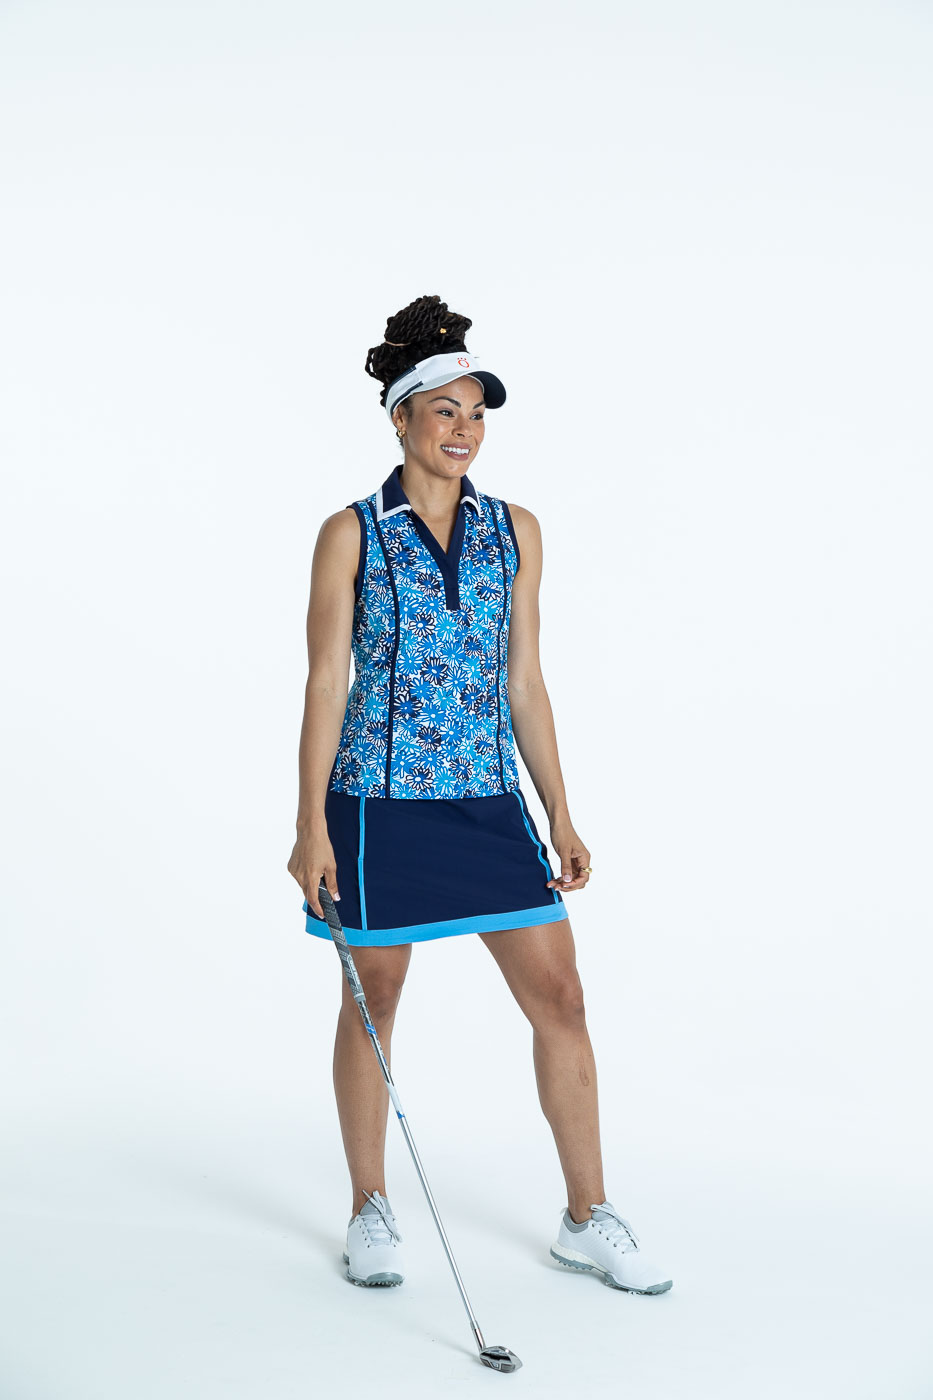 Smiling woman golfer in a crazy daisy Shape Shifter sleeveless golf top, a navy blue Fresh and Flirty Golf Skort, and a white No Hat Hair Visor.